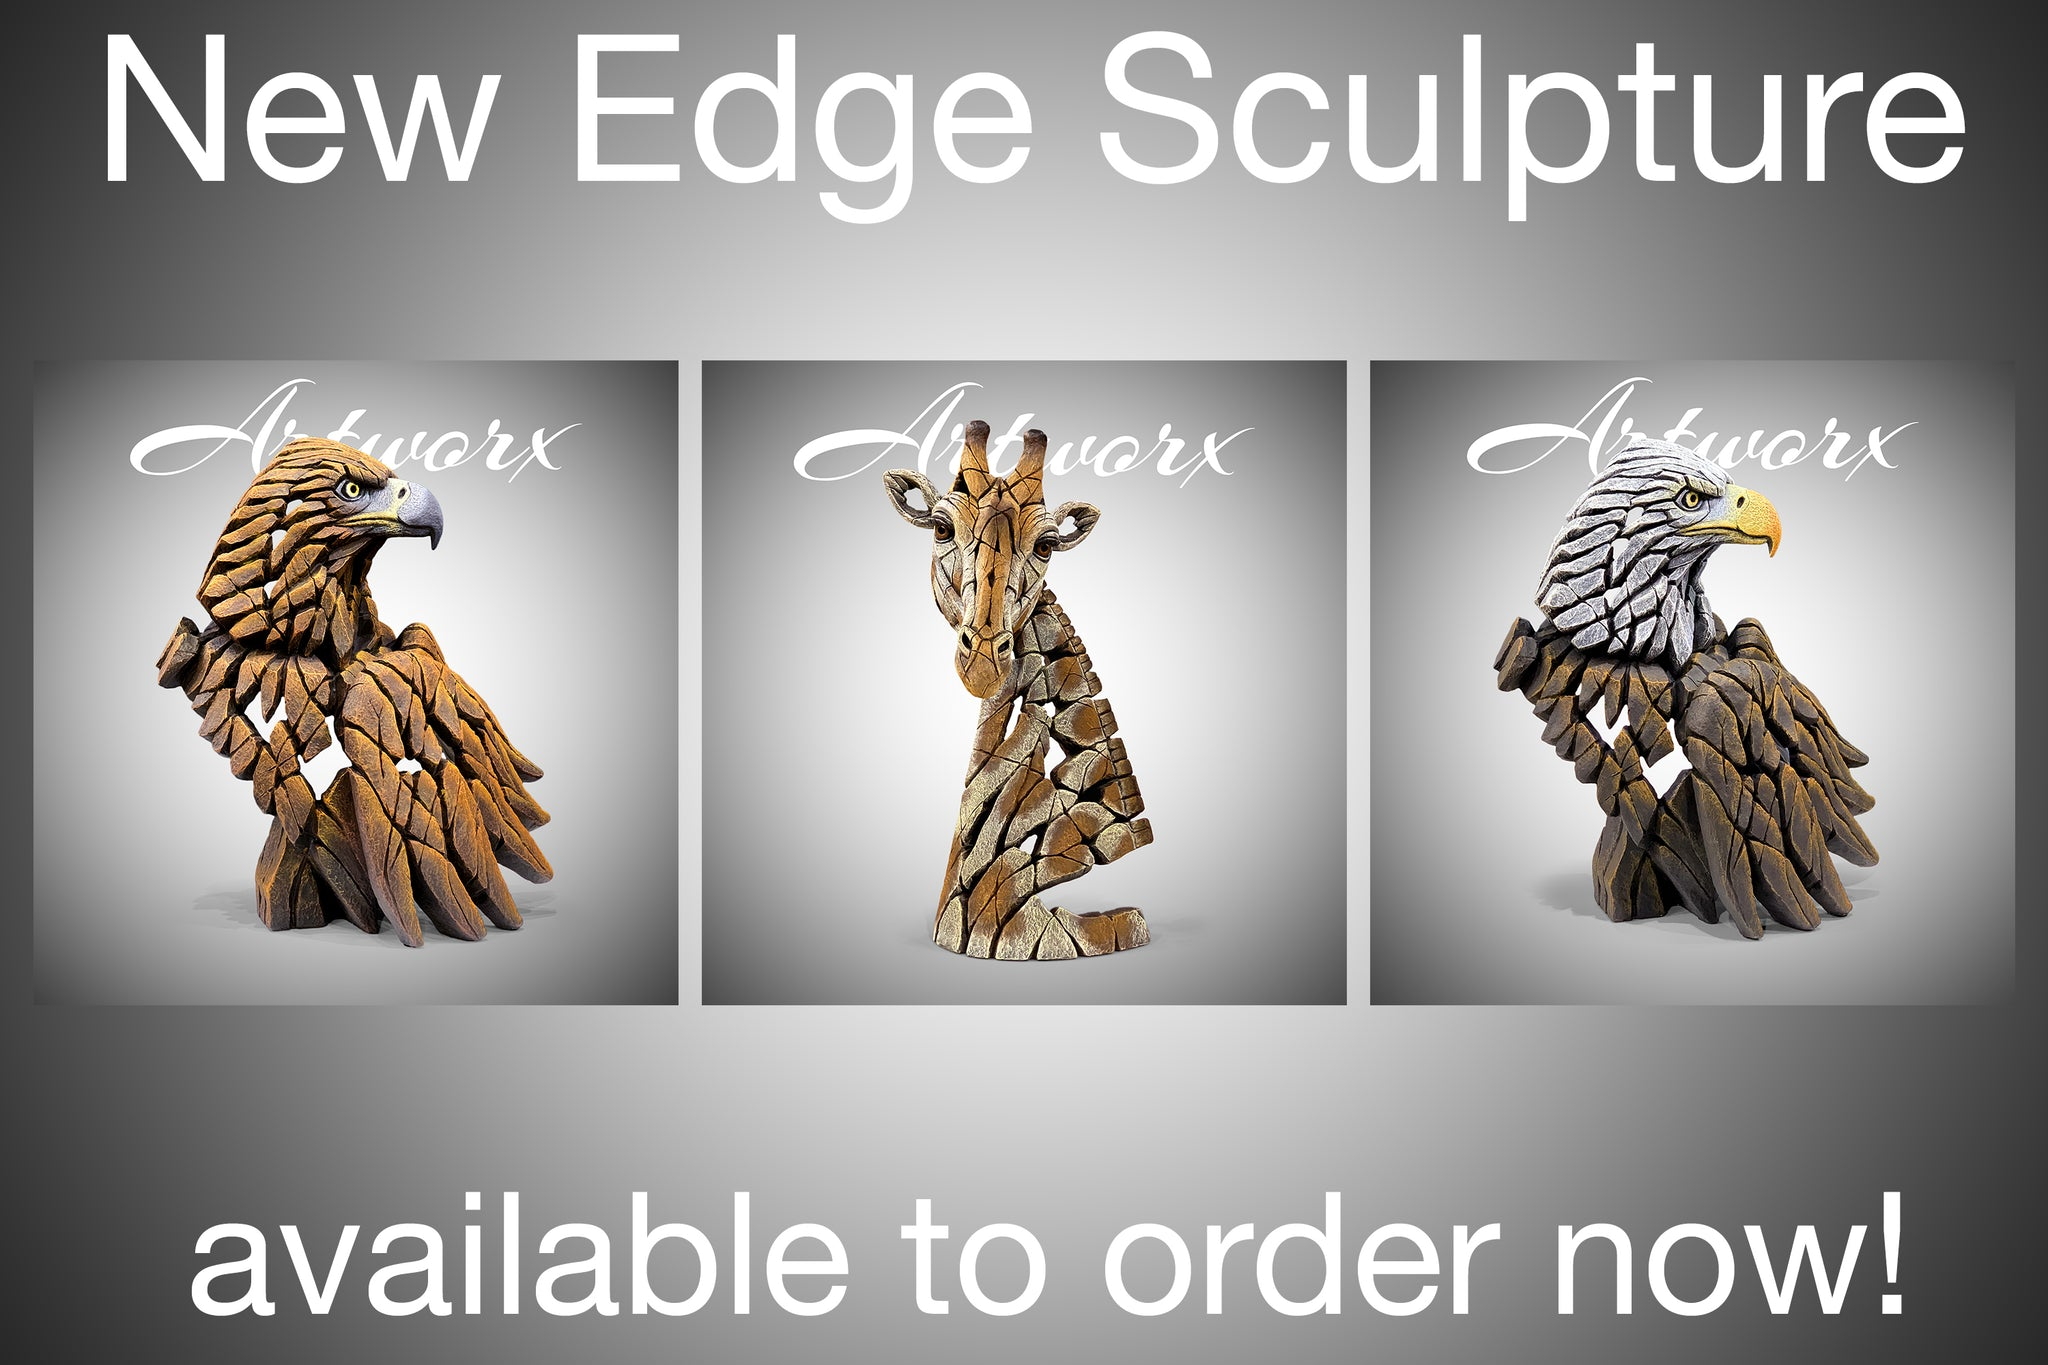 New Edge Sculpture Eagles and Giraffe